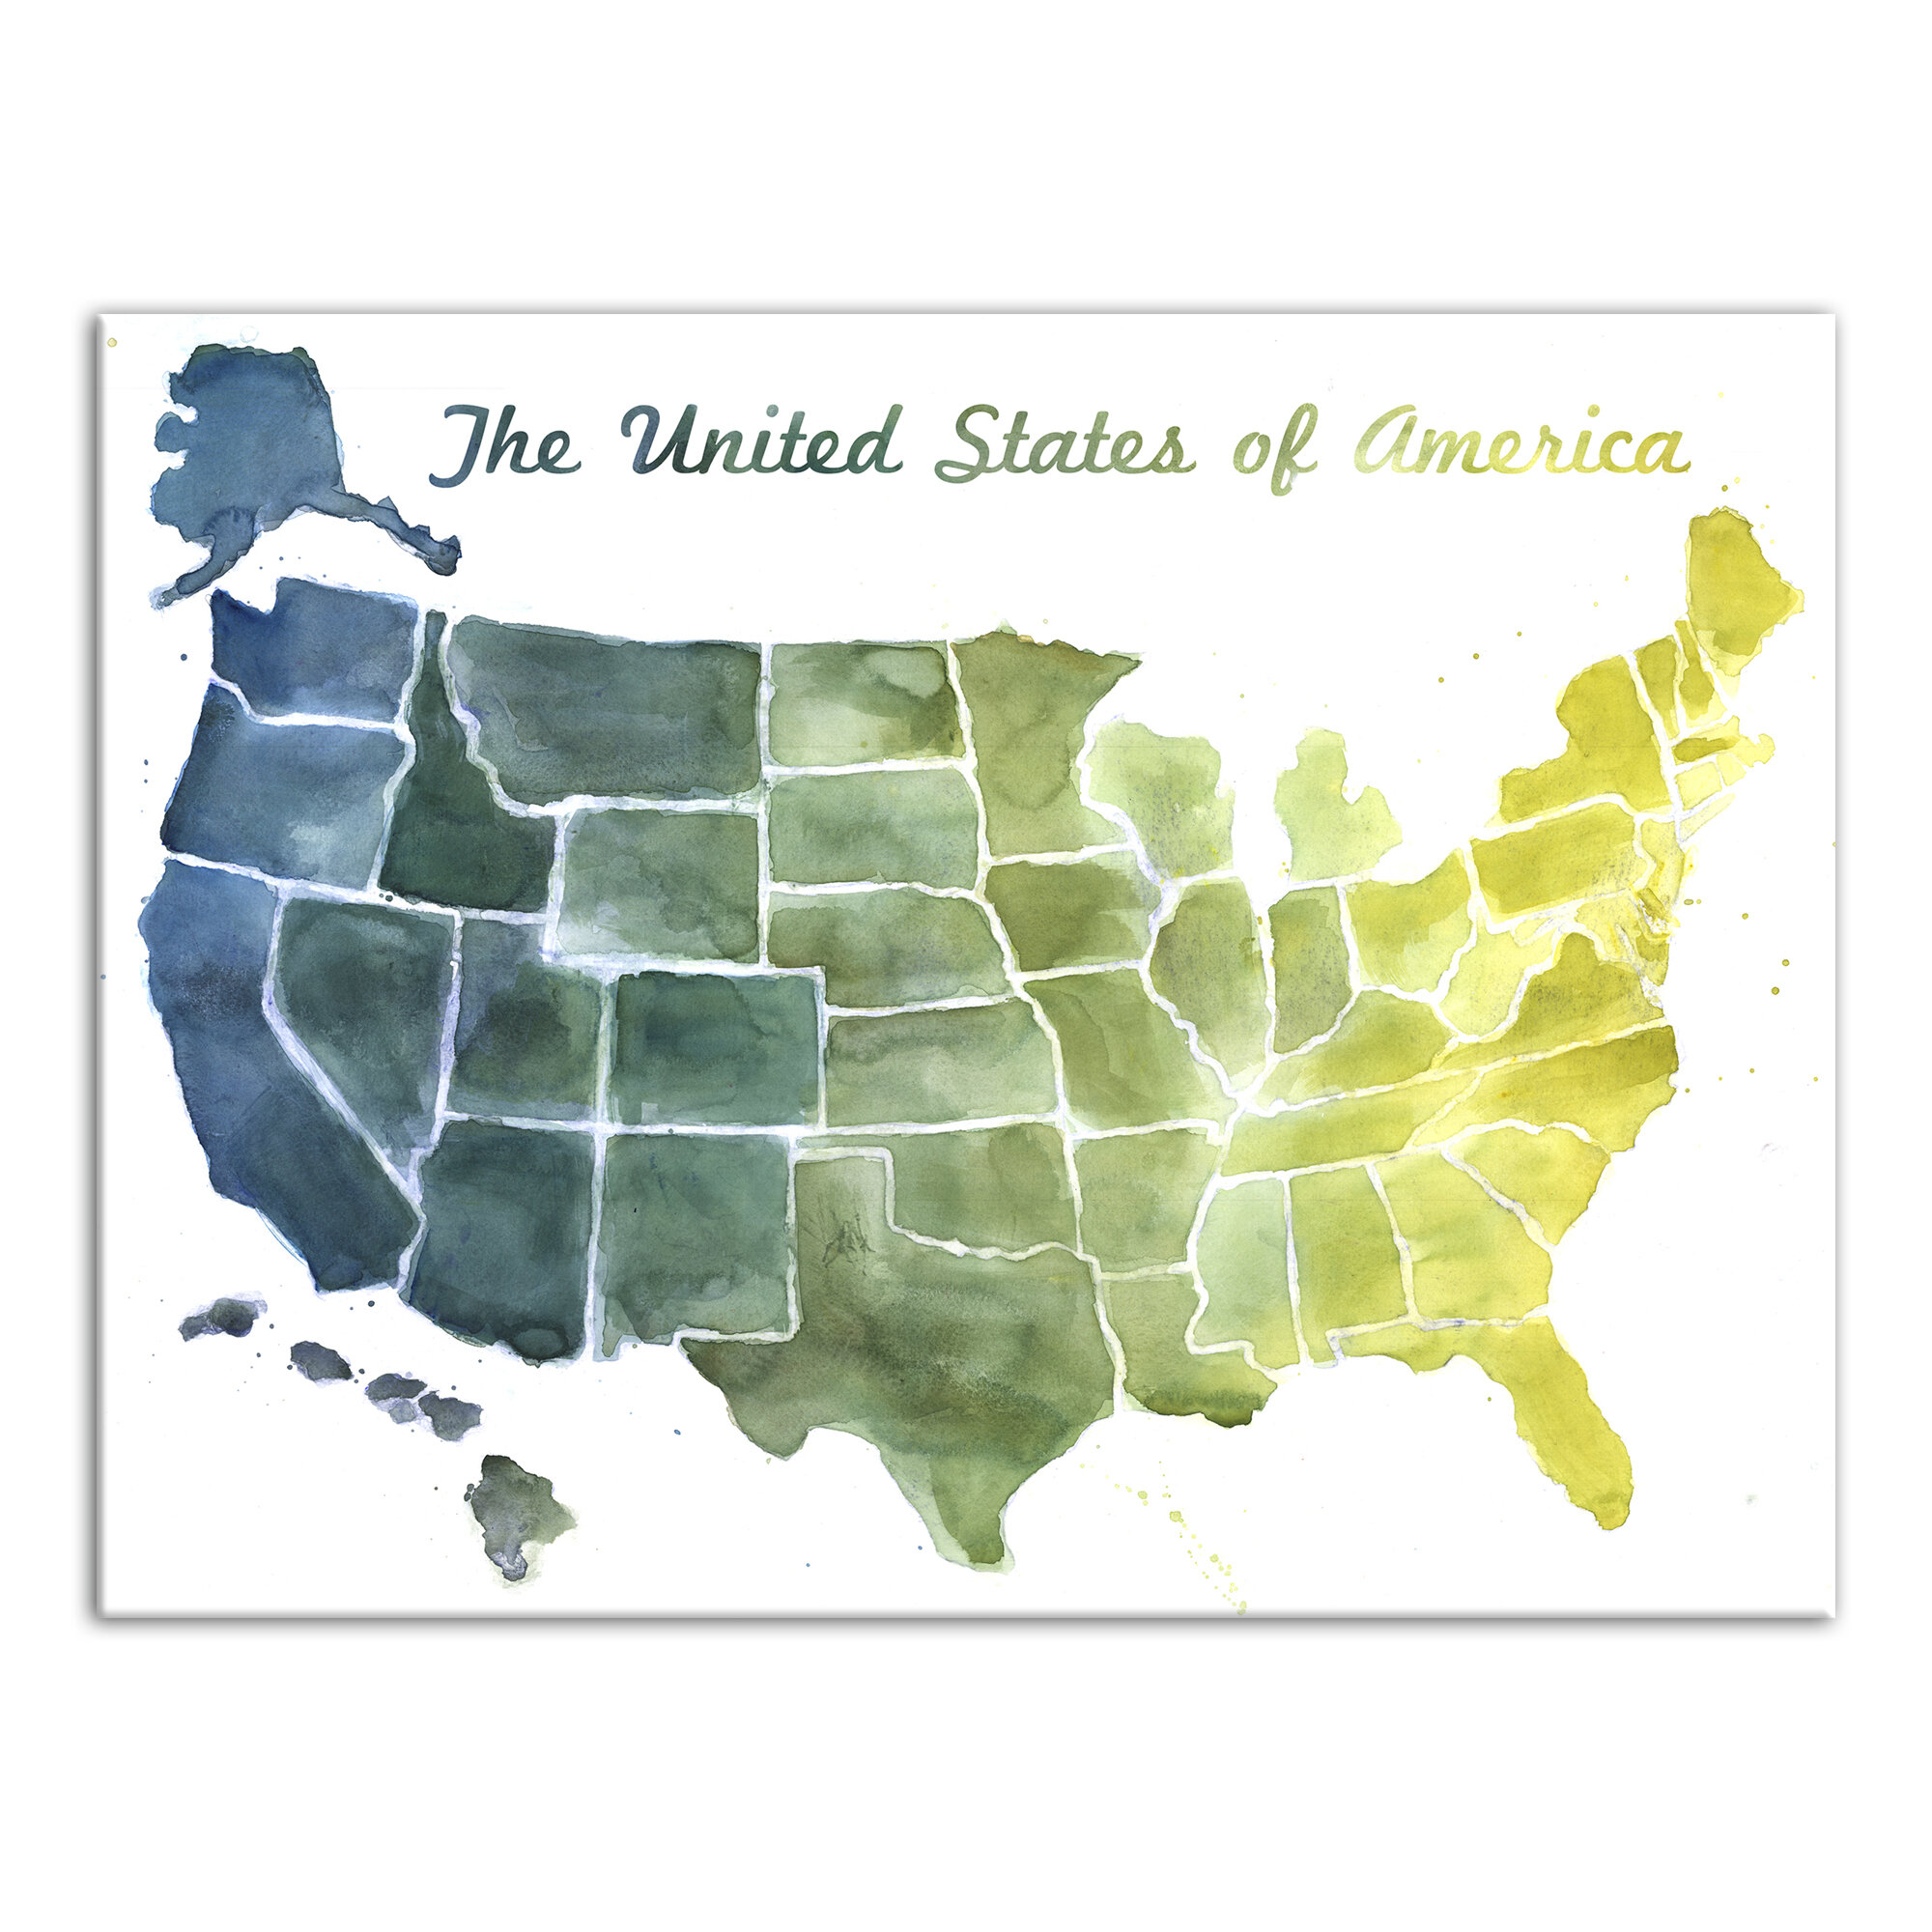 'United States Map' Watercolor Painting Print on Canvas on world map to print, nevada map to print, miami map to print, arizona map to print, jamaica map to print, belize map to print, katy trail map to print, united states print out, south carolina map to print, missouri map to print, denver map to print, seattle map to print, canada map to print, american revolution map to print, new york map to print, argentina map to print, wisconsin map to print, ukraine map to print, colorado map to print, nicaragua map to print,